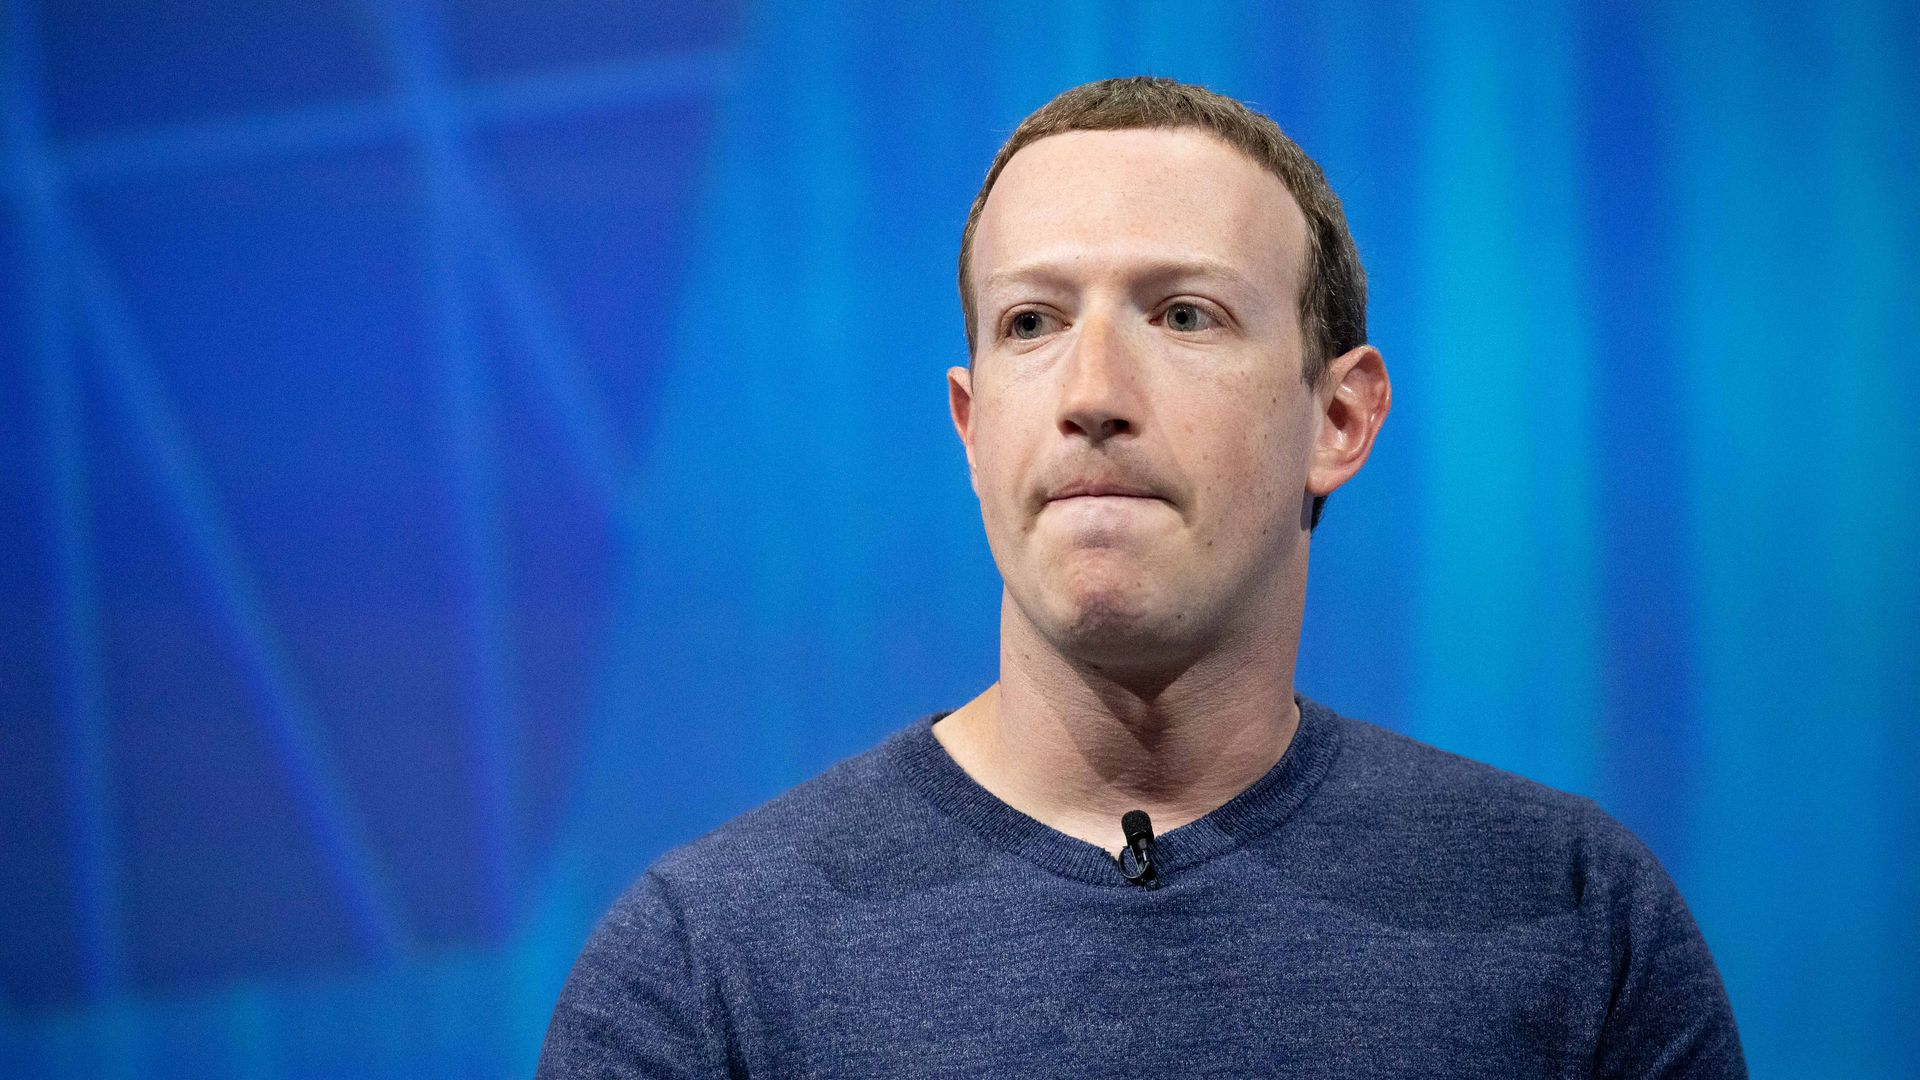 Facebook stored hundreds of millions of user passwords in plain text